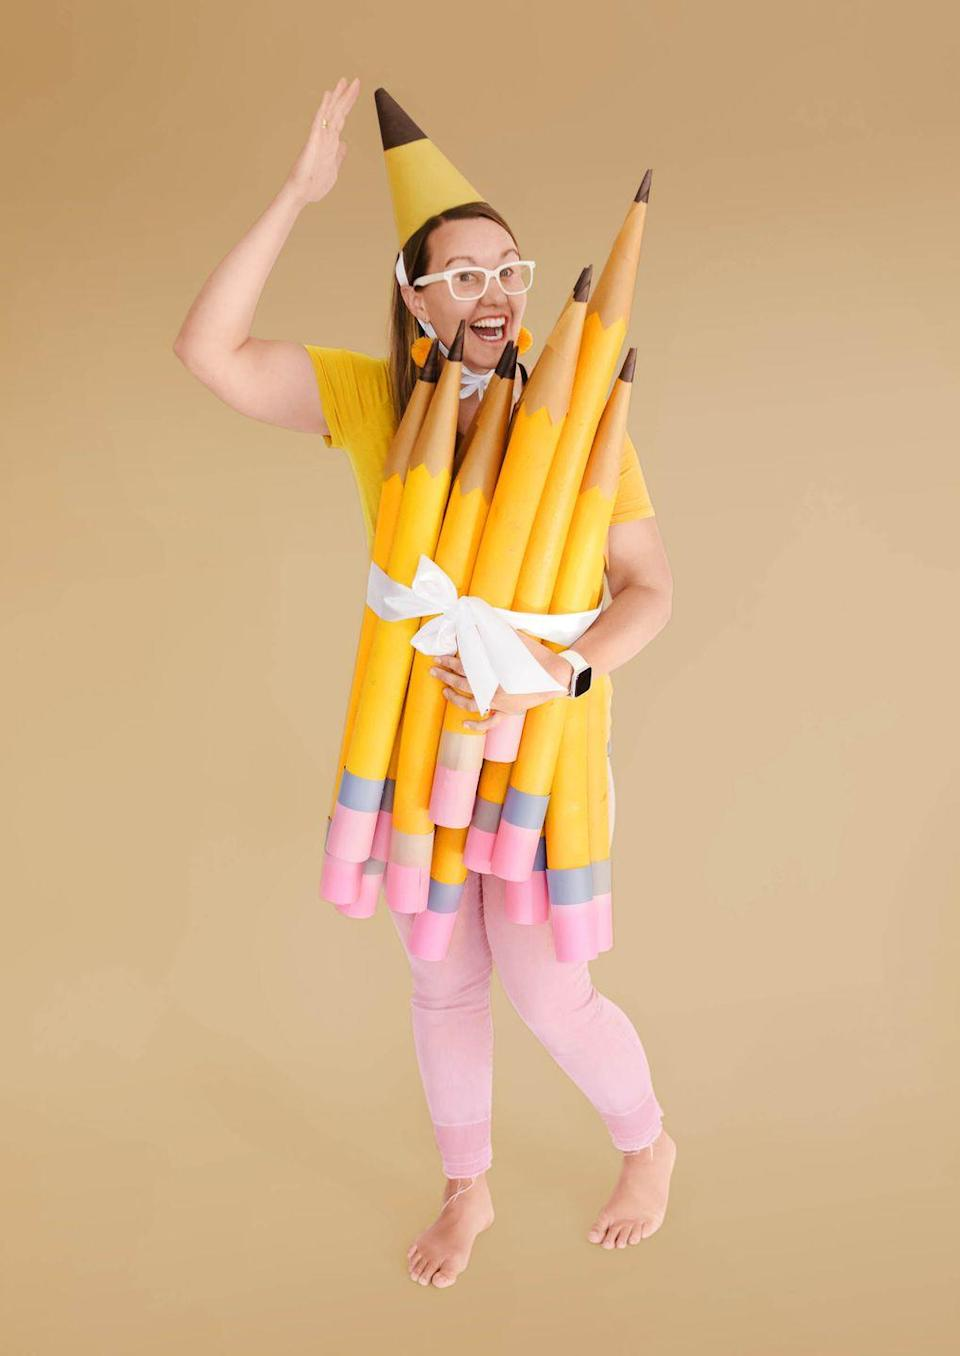 """<p>This costume will have you lookin' sharp!</p><p>Make the costume: Round up some pool noodles. Coat the summer staple with yellow spray paint (try Rust-Oleum American Accents in Marigold); add brown paper-cone tips. Wrap ends with pink and gray craft paper to make erasers. Secure the bundle around yourself with ribbon. Extra credit for a corresponding pointy party hat.</p><p><strong>Get the tutorial at <strong><a href=""""https://ohyaystudio.com/a-bouquet-of-newly-sharpened-pencils-costume-and-how-much-i-love-youve-got-mail/"""" rel=""""nofollow noopener"""" target=""""_blank"""" data-ylk=""""slk:Oh Yay Studio"""" class=""""link rapid-noclick-resp"""">Oh Yay Studio</a></strong>.</strong></p><p><a class=""""link rapid-noclick-resp"""" href=""""https://www.amazon.com/Oodles-Noodles-Deluxe-Foam-Pool/dp/B01LBEX84S/ref=sr_1_1_sspa?tag=syn-yahoo-20&ascsubtag=%5Bartid%7C10050.g.4571%5Bsrc%7Cyahoo-us"""" rel=""""nofollow noopener"""" target=""""_blank"""" data-ylk=""""slk:SHOP POOL NOODLES"""">SHOP POOL NOODLES</a></p>"""